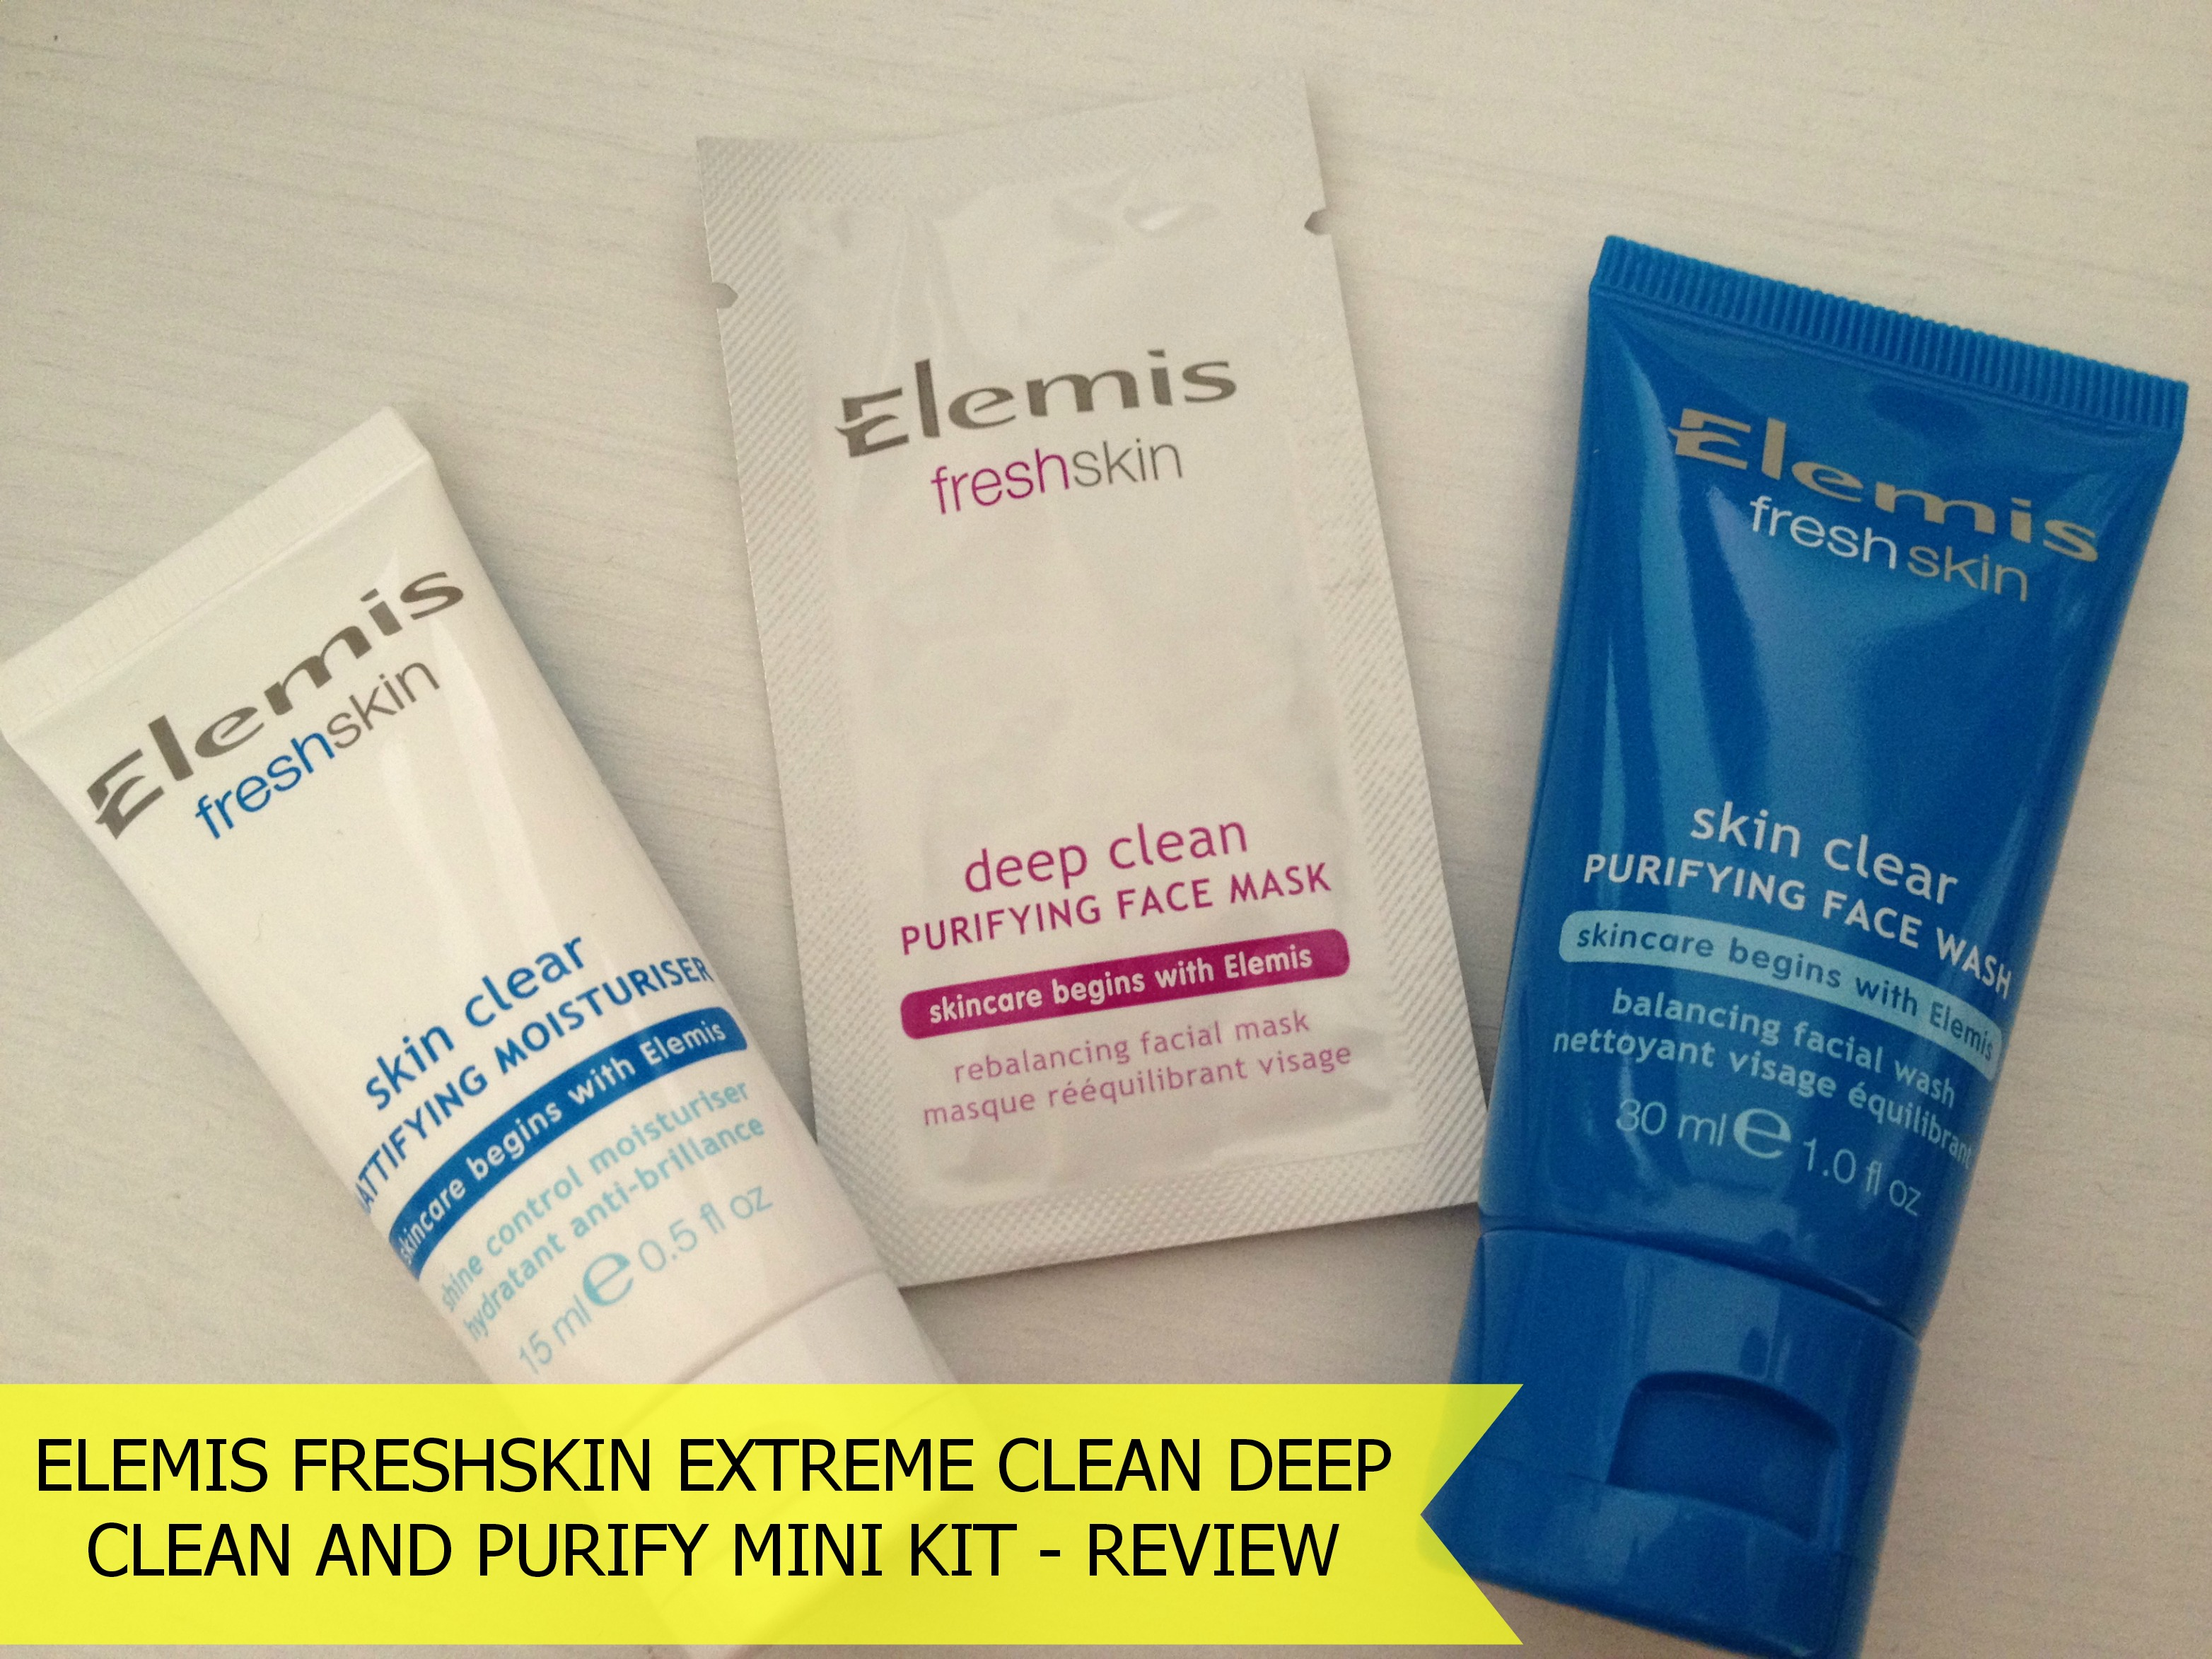 Elemis_Freshskin_Deep_Clean_Mini_Kit